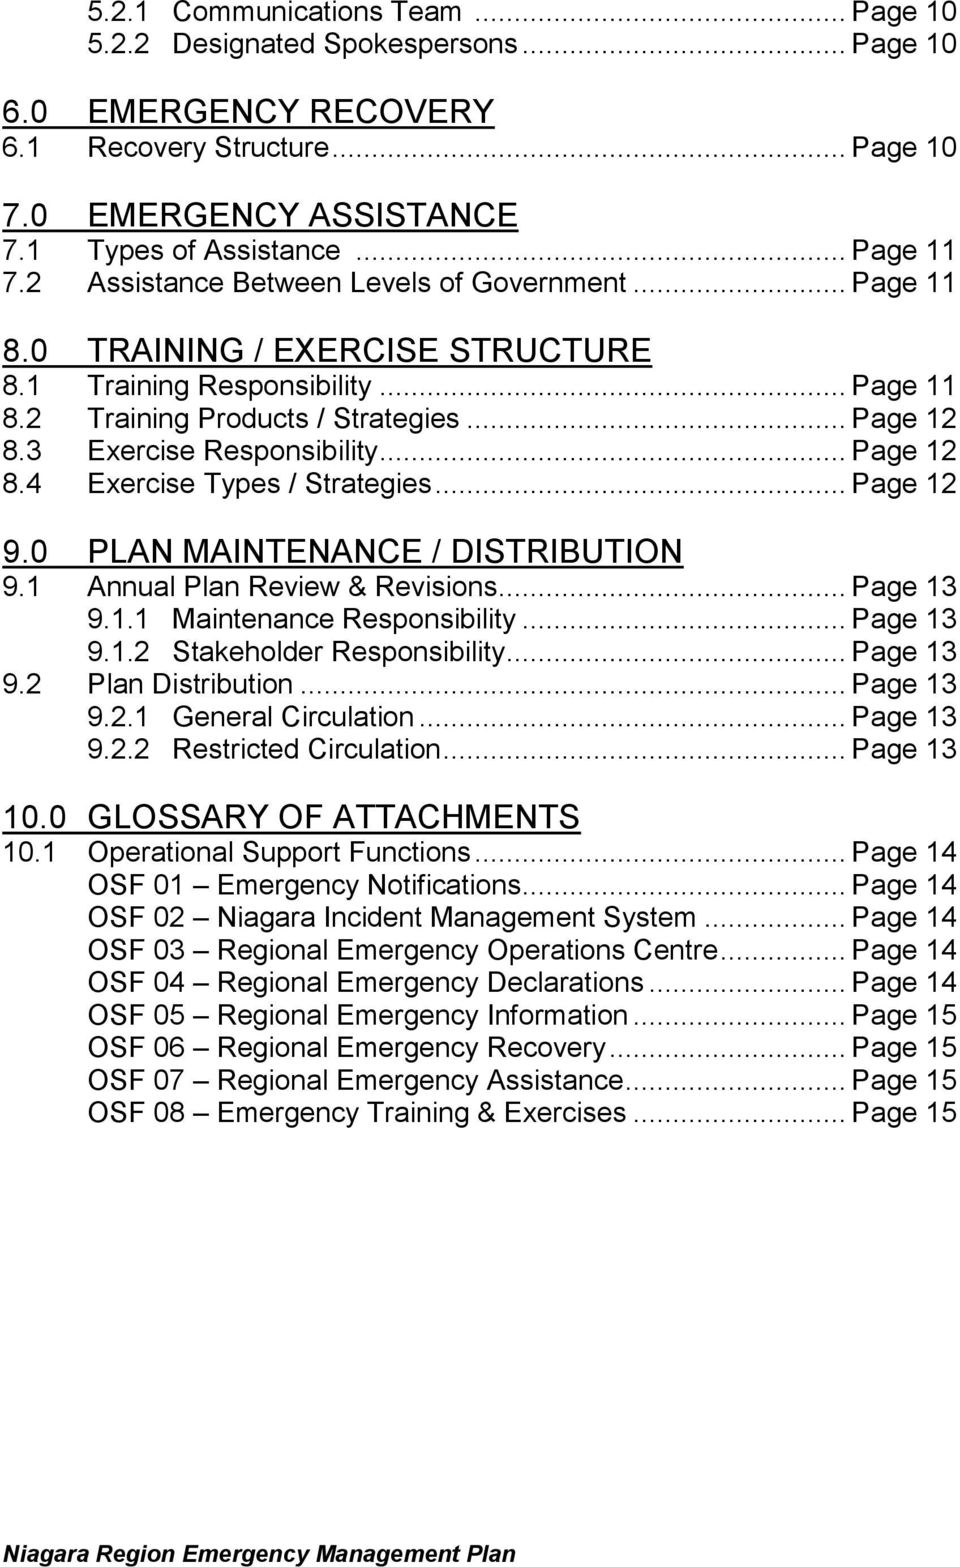 .. Page 12 8.4 Exercise Types / Strategies... Page 12 9.0 PLAN MAINTENANCE / DISTRIBUTION 9.1 Annual Plan Review & Revisions... Page 13 9.1.1 Maintenance Responsibility... Page 13 9.1.2 Stakeholder Responsibility.